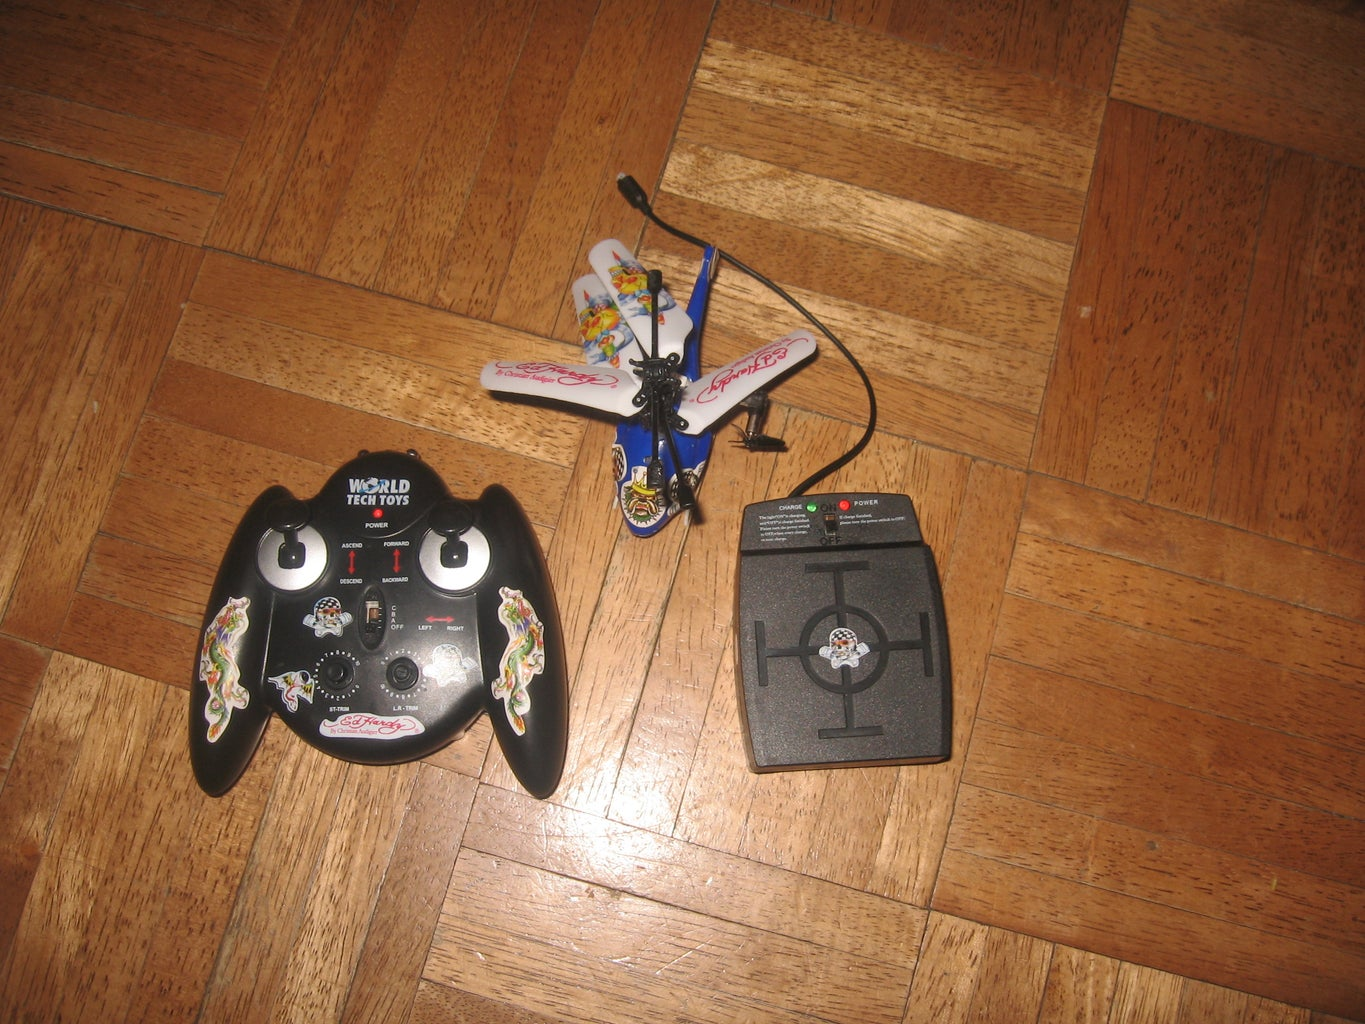 How to Fly a Remote Helicopter